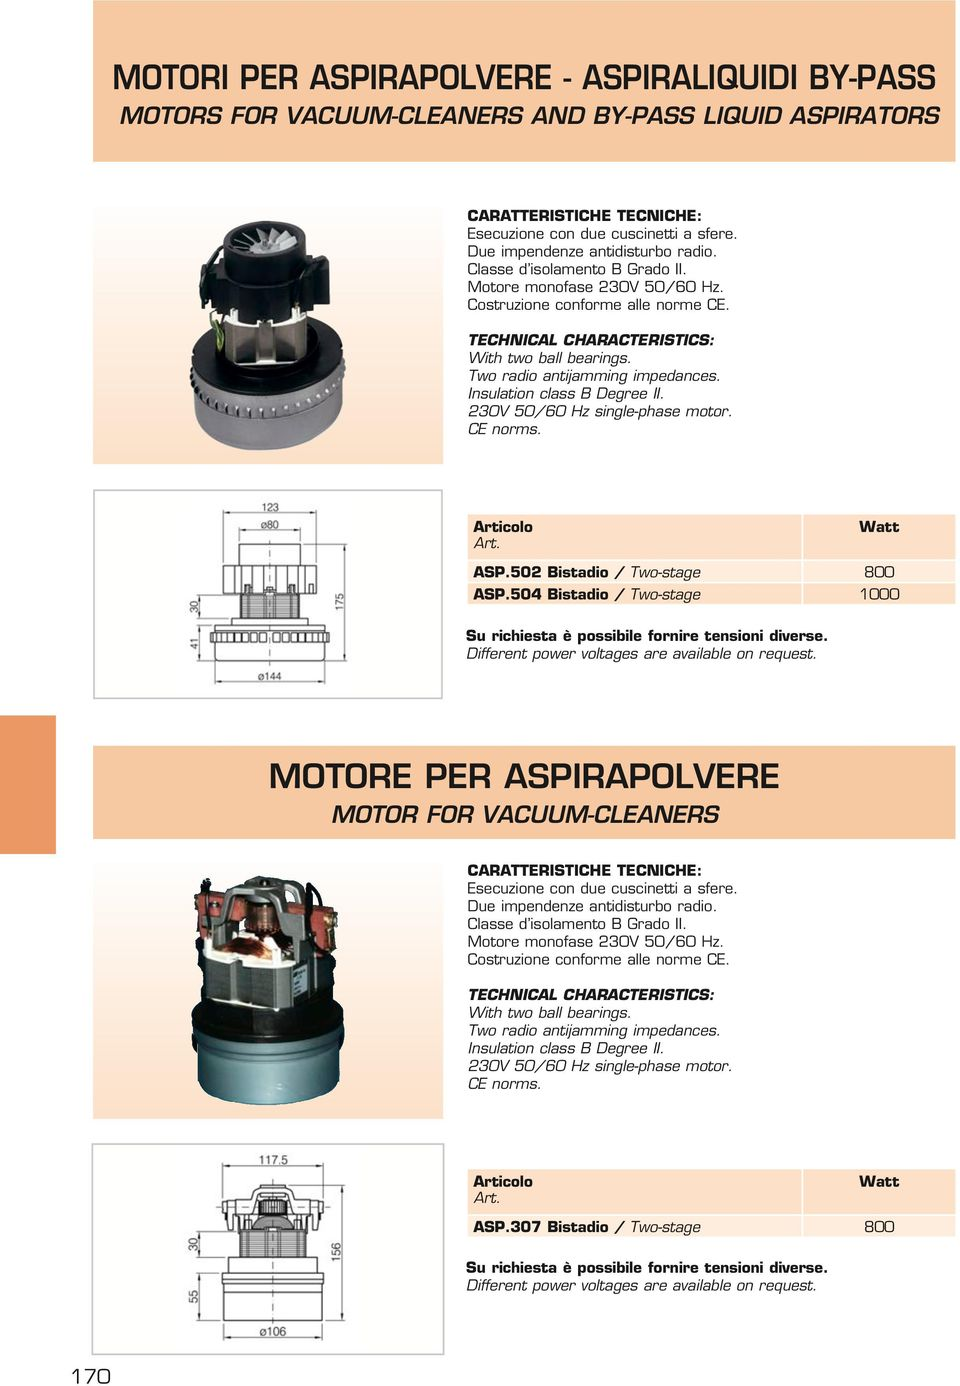 Insulation class Degree II. 230V 50/60 Hz single-phase motor. CE norms. Watt SP.502 istadio / Two-stage 800 SP.504 istadio / Two-stage 1000 Su richiesta è possibile fornire tensioni diverse.